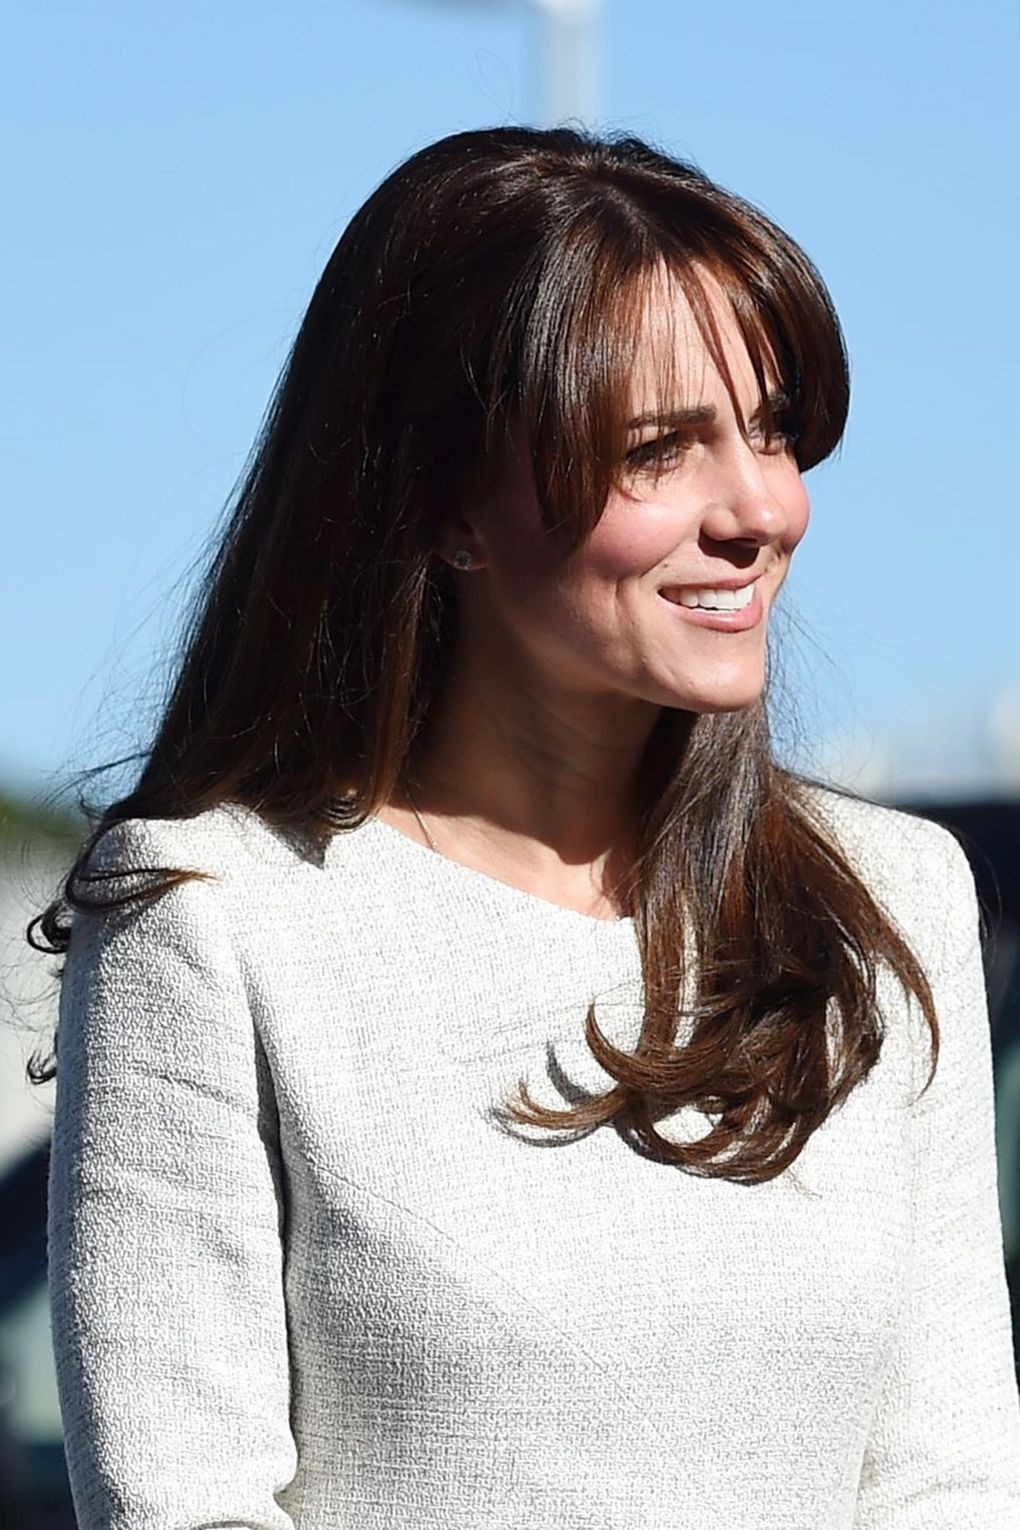 duchess-of-cambridge-hair-vogue-25sep15-pa-b